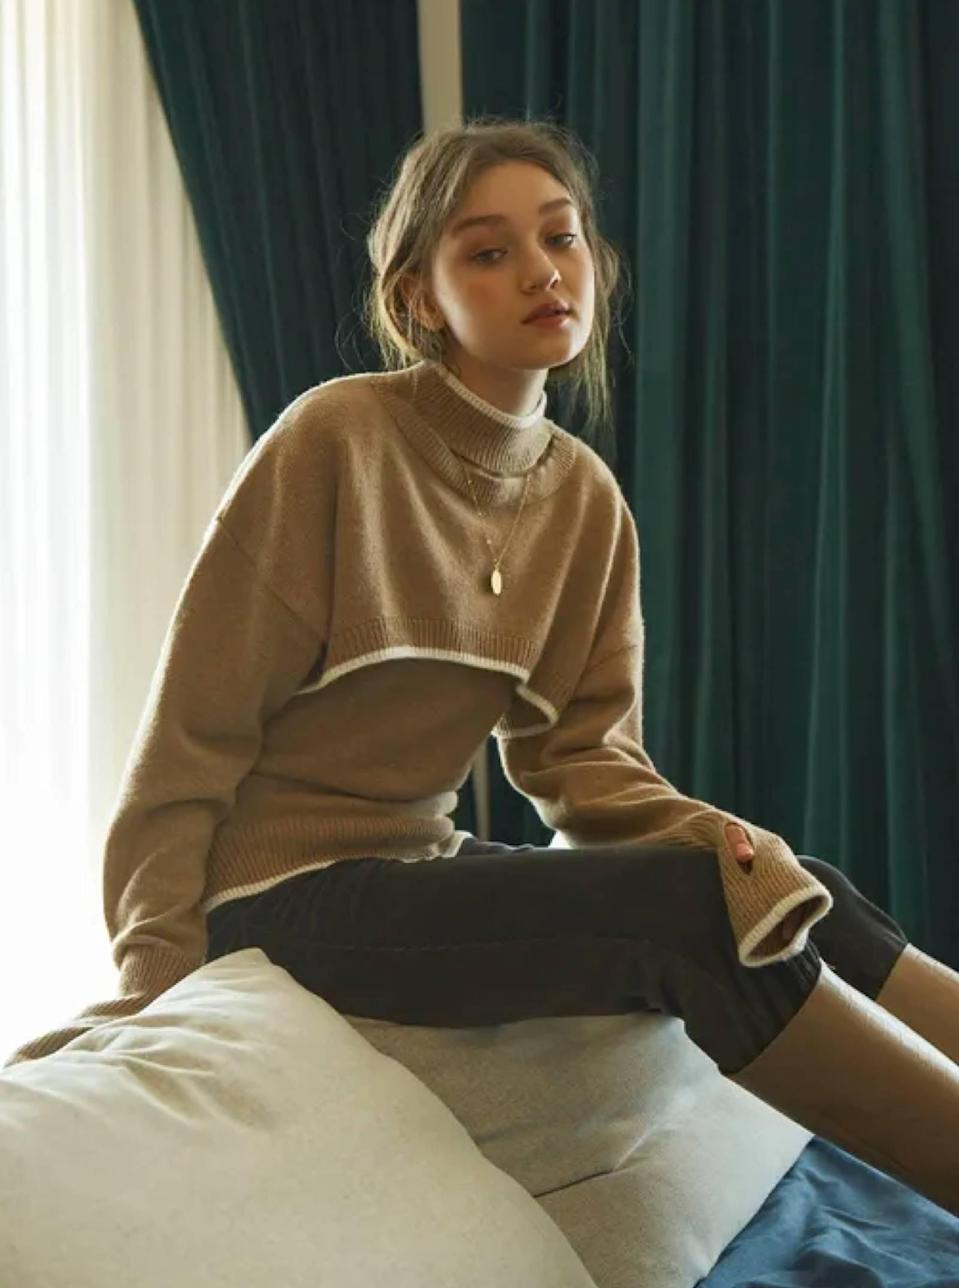 """This two-in-one piece comes with a sleeveless knit and cropped turtleneck that's perfect for rushed morning dressers who never have """"anything"""" to wear. Peep the readymade thumb holes that are way more convenient than making your own. $178, W Concept. <a href=""""https://us.wconcept.com/bolero-knit-set-710231307.html"""" rel=""""nofollow noopener"""" target=""""_blank"""" data-ylk=""""slk:Get it now!"""" class=""""link rapid-noclick-resp"""">Get it now!</a>"""